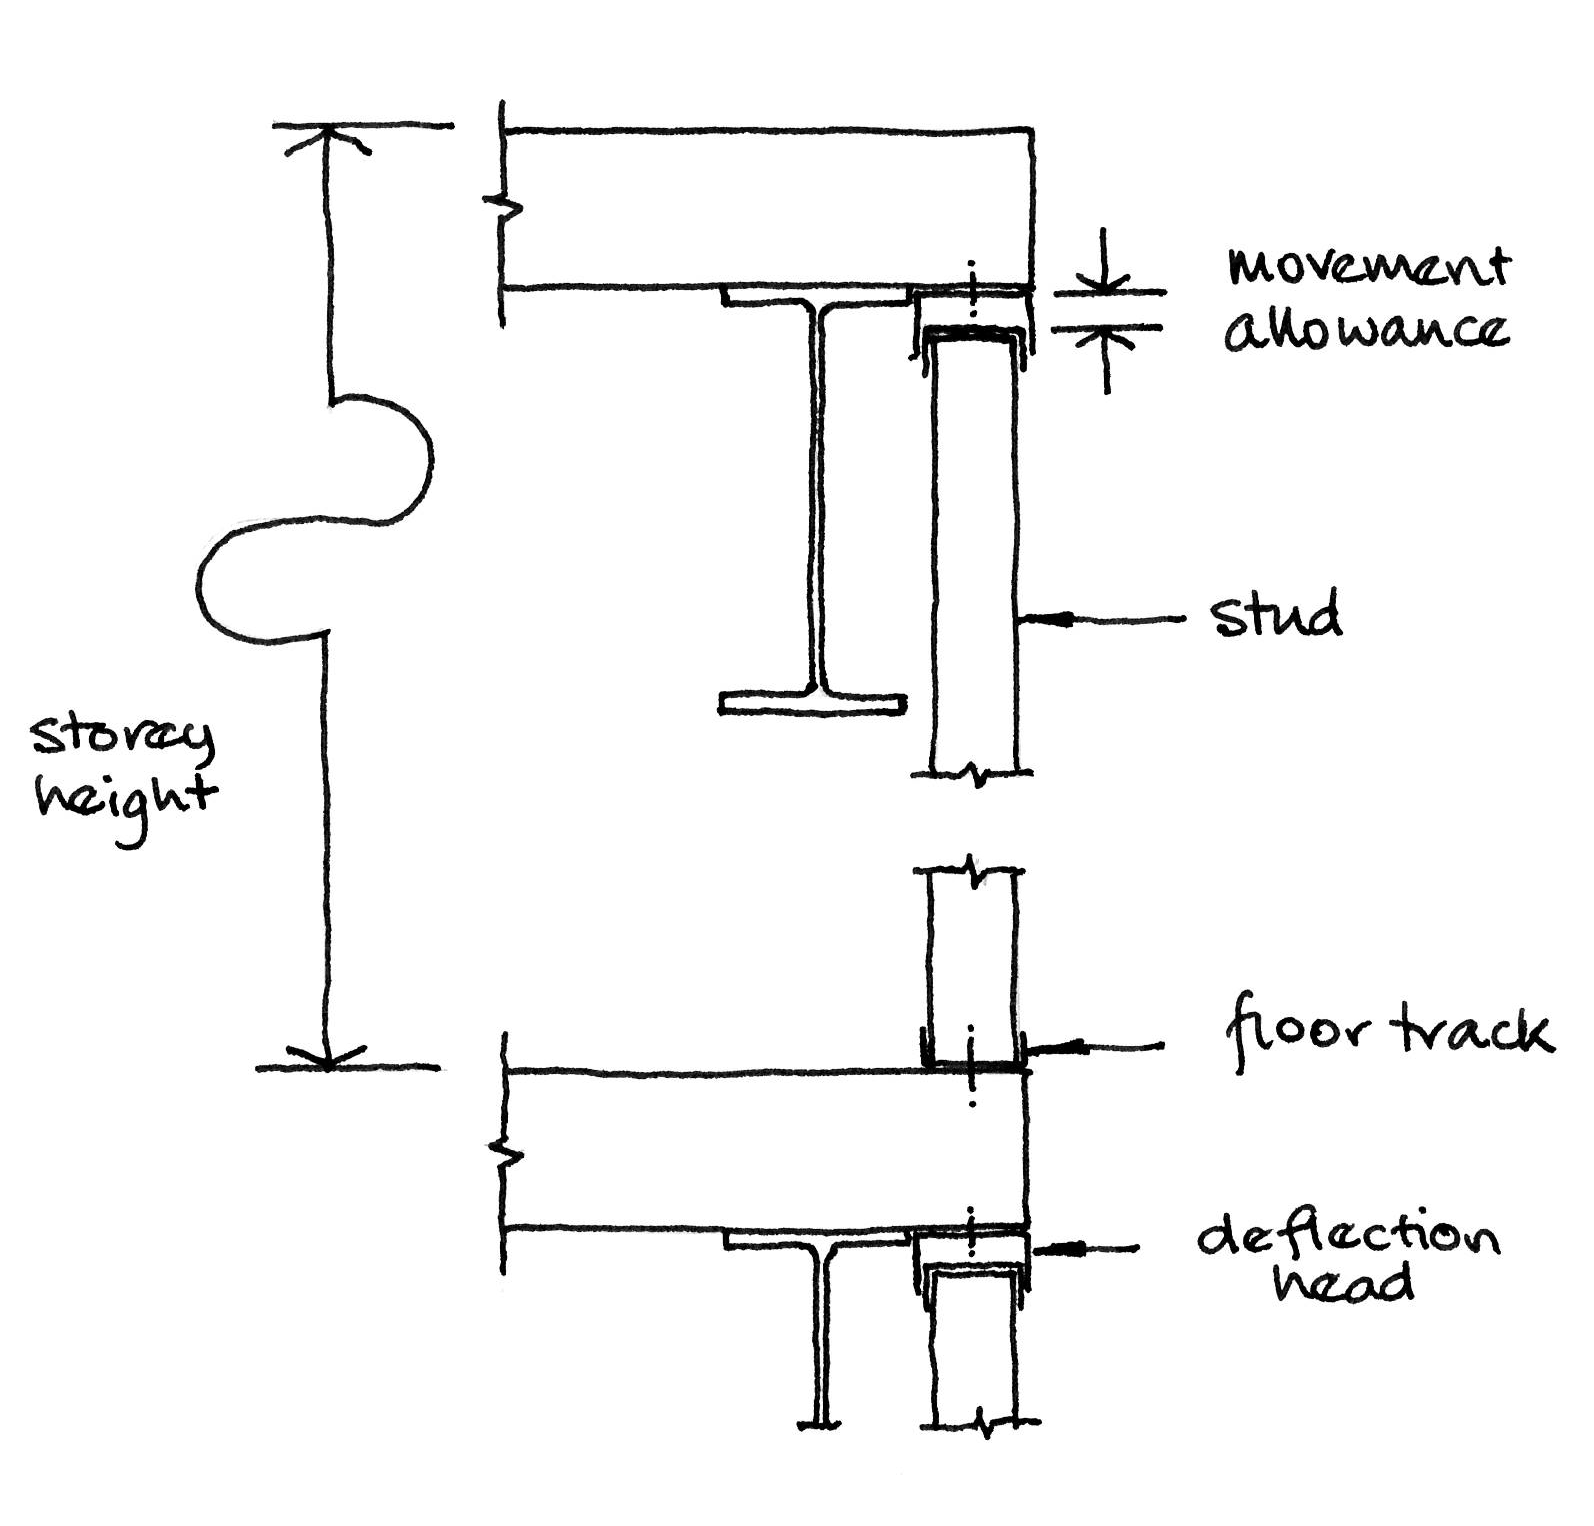 Shear Force Diagram For Cantilever Beam Steel Infill Wall Support